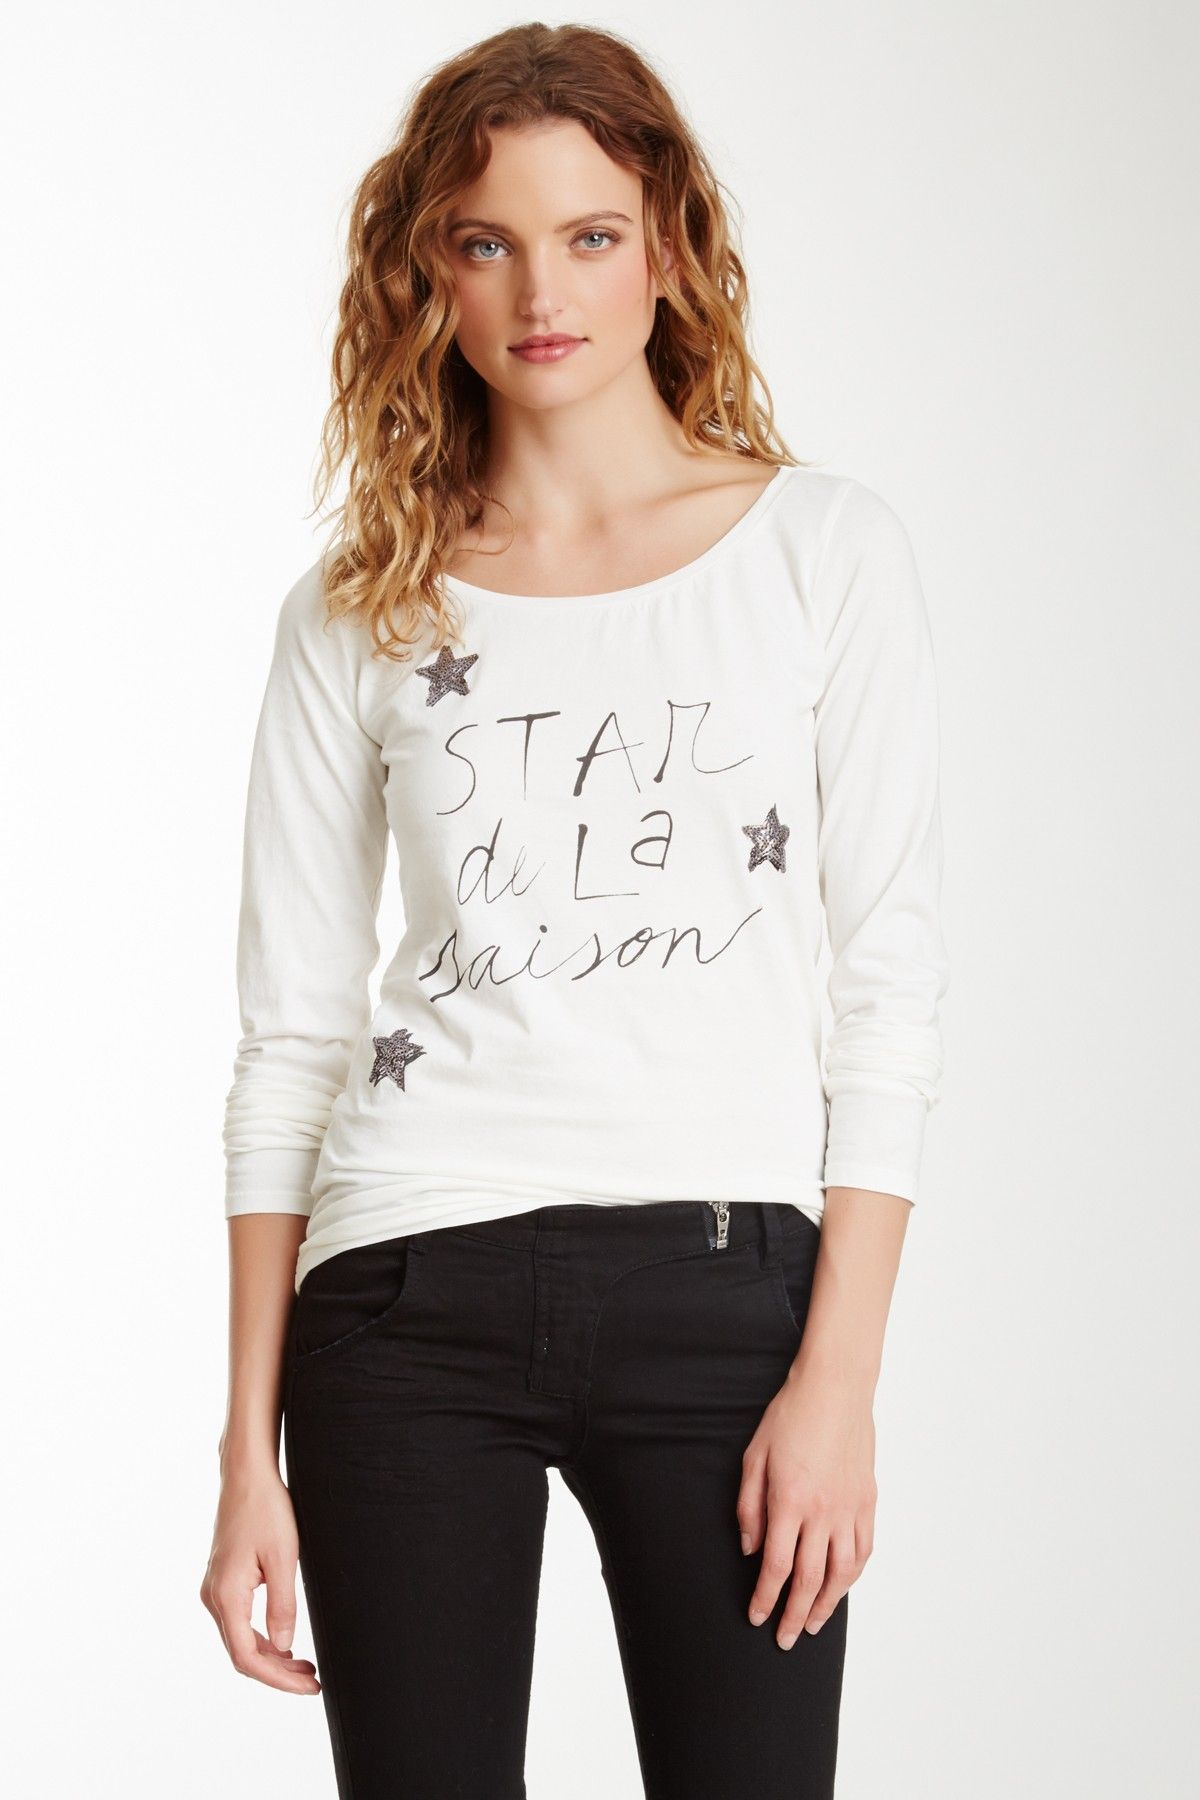 Maison Scotch French Theme Long Sleeve Tee//